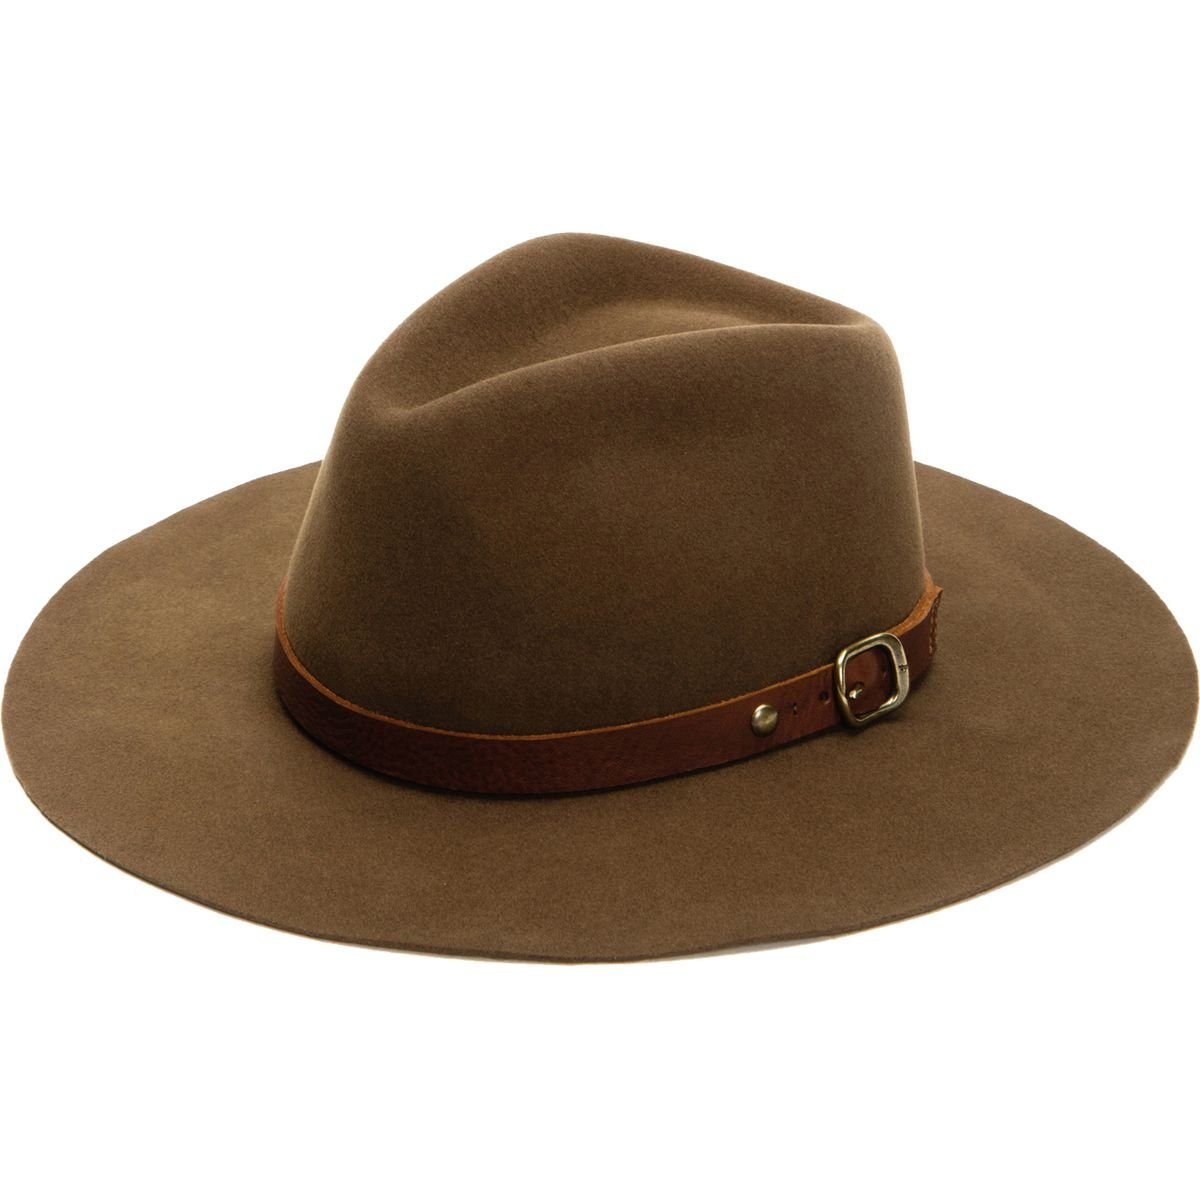 Frye Campus Hat - Women's Chestnut, S by FRYE